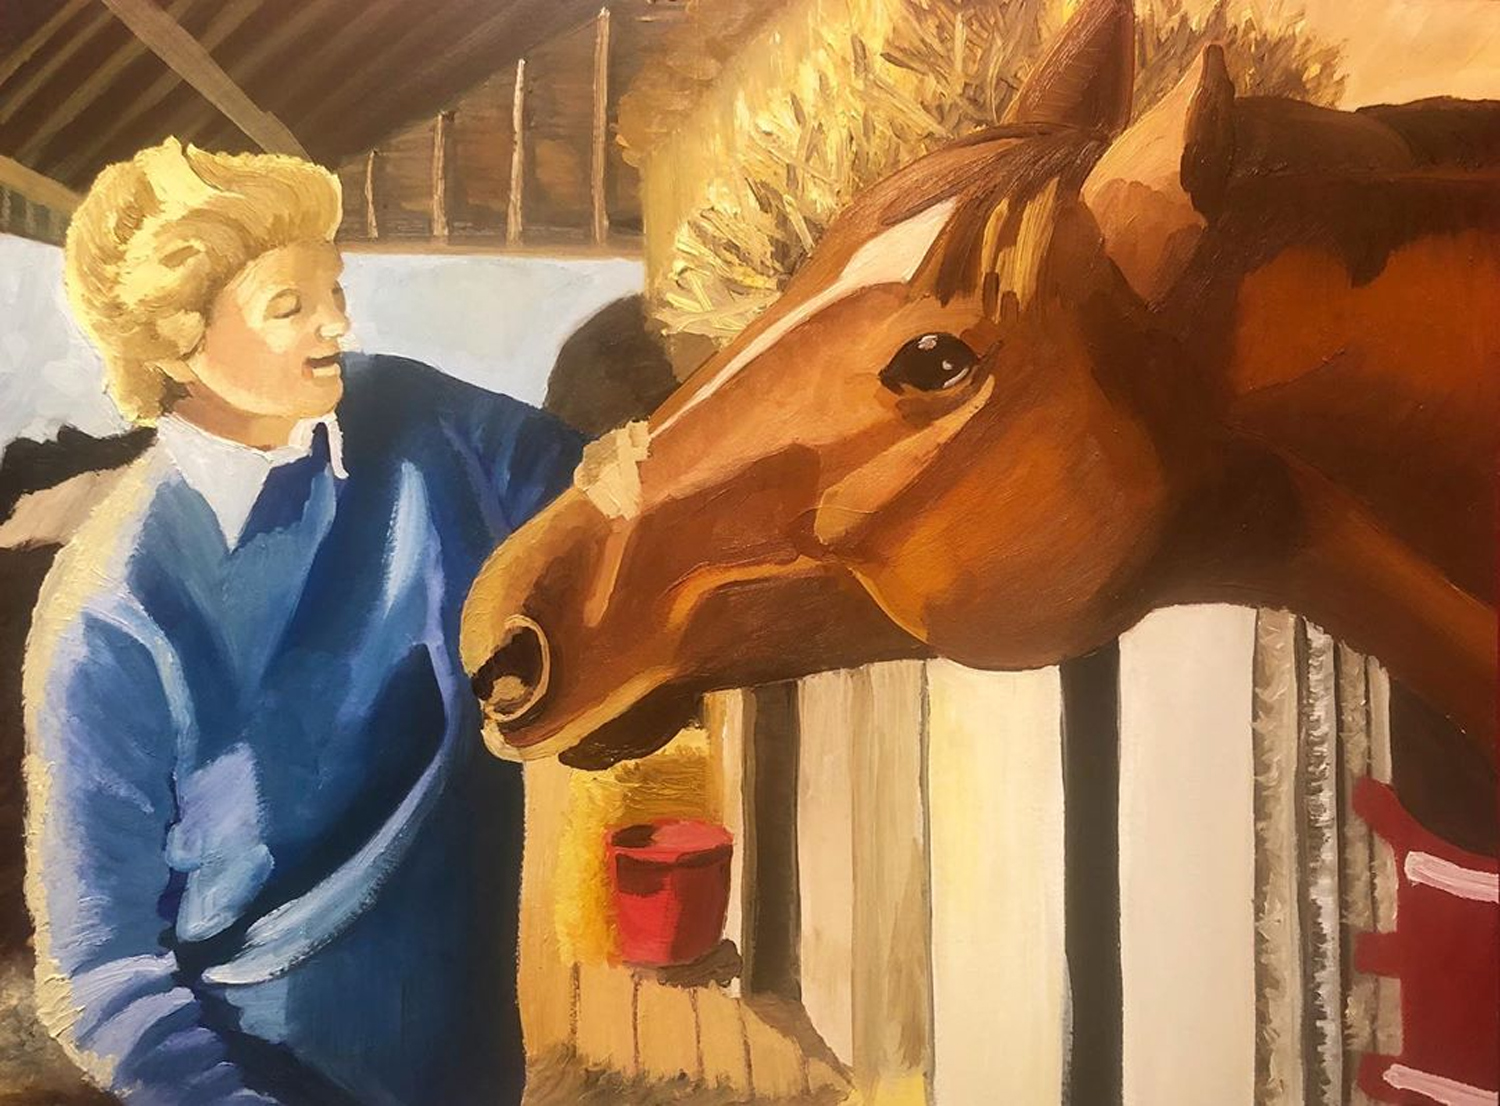 secretariat-painting-katrina-eugenia-oil-painting-painter-monmouth-park-racetrack-monmouth-racetrack-maximum-security-haskell-2019-thoroughbred-racing-racehorse-painting-race-horse-painting14.jpg